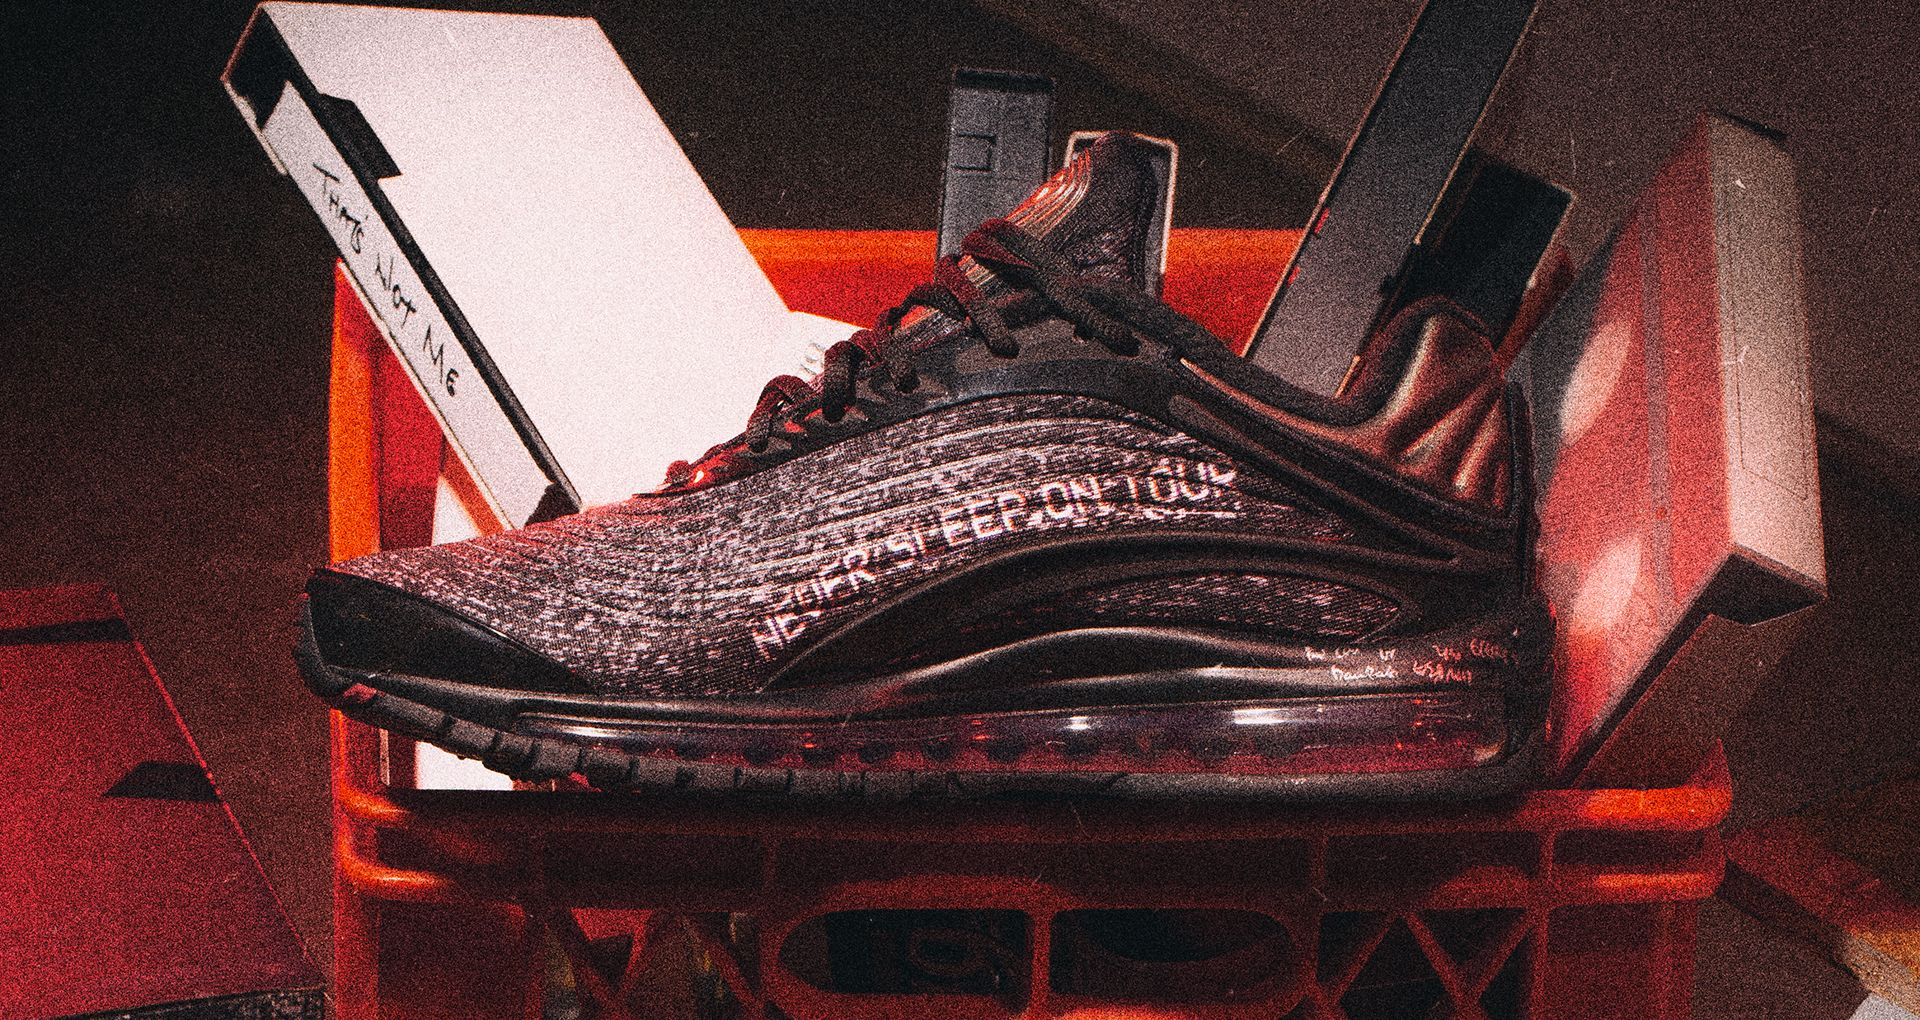 Release info: Skepta x Nike Air Max Deluxe